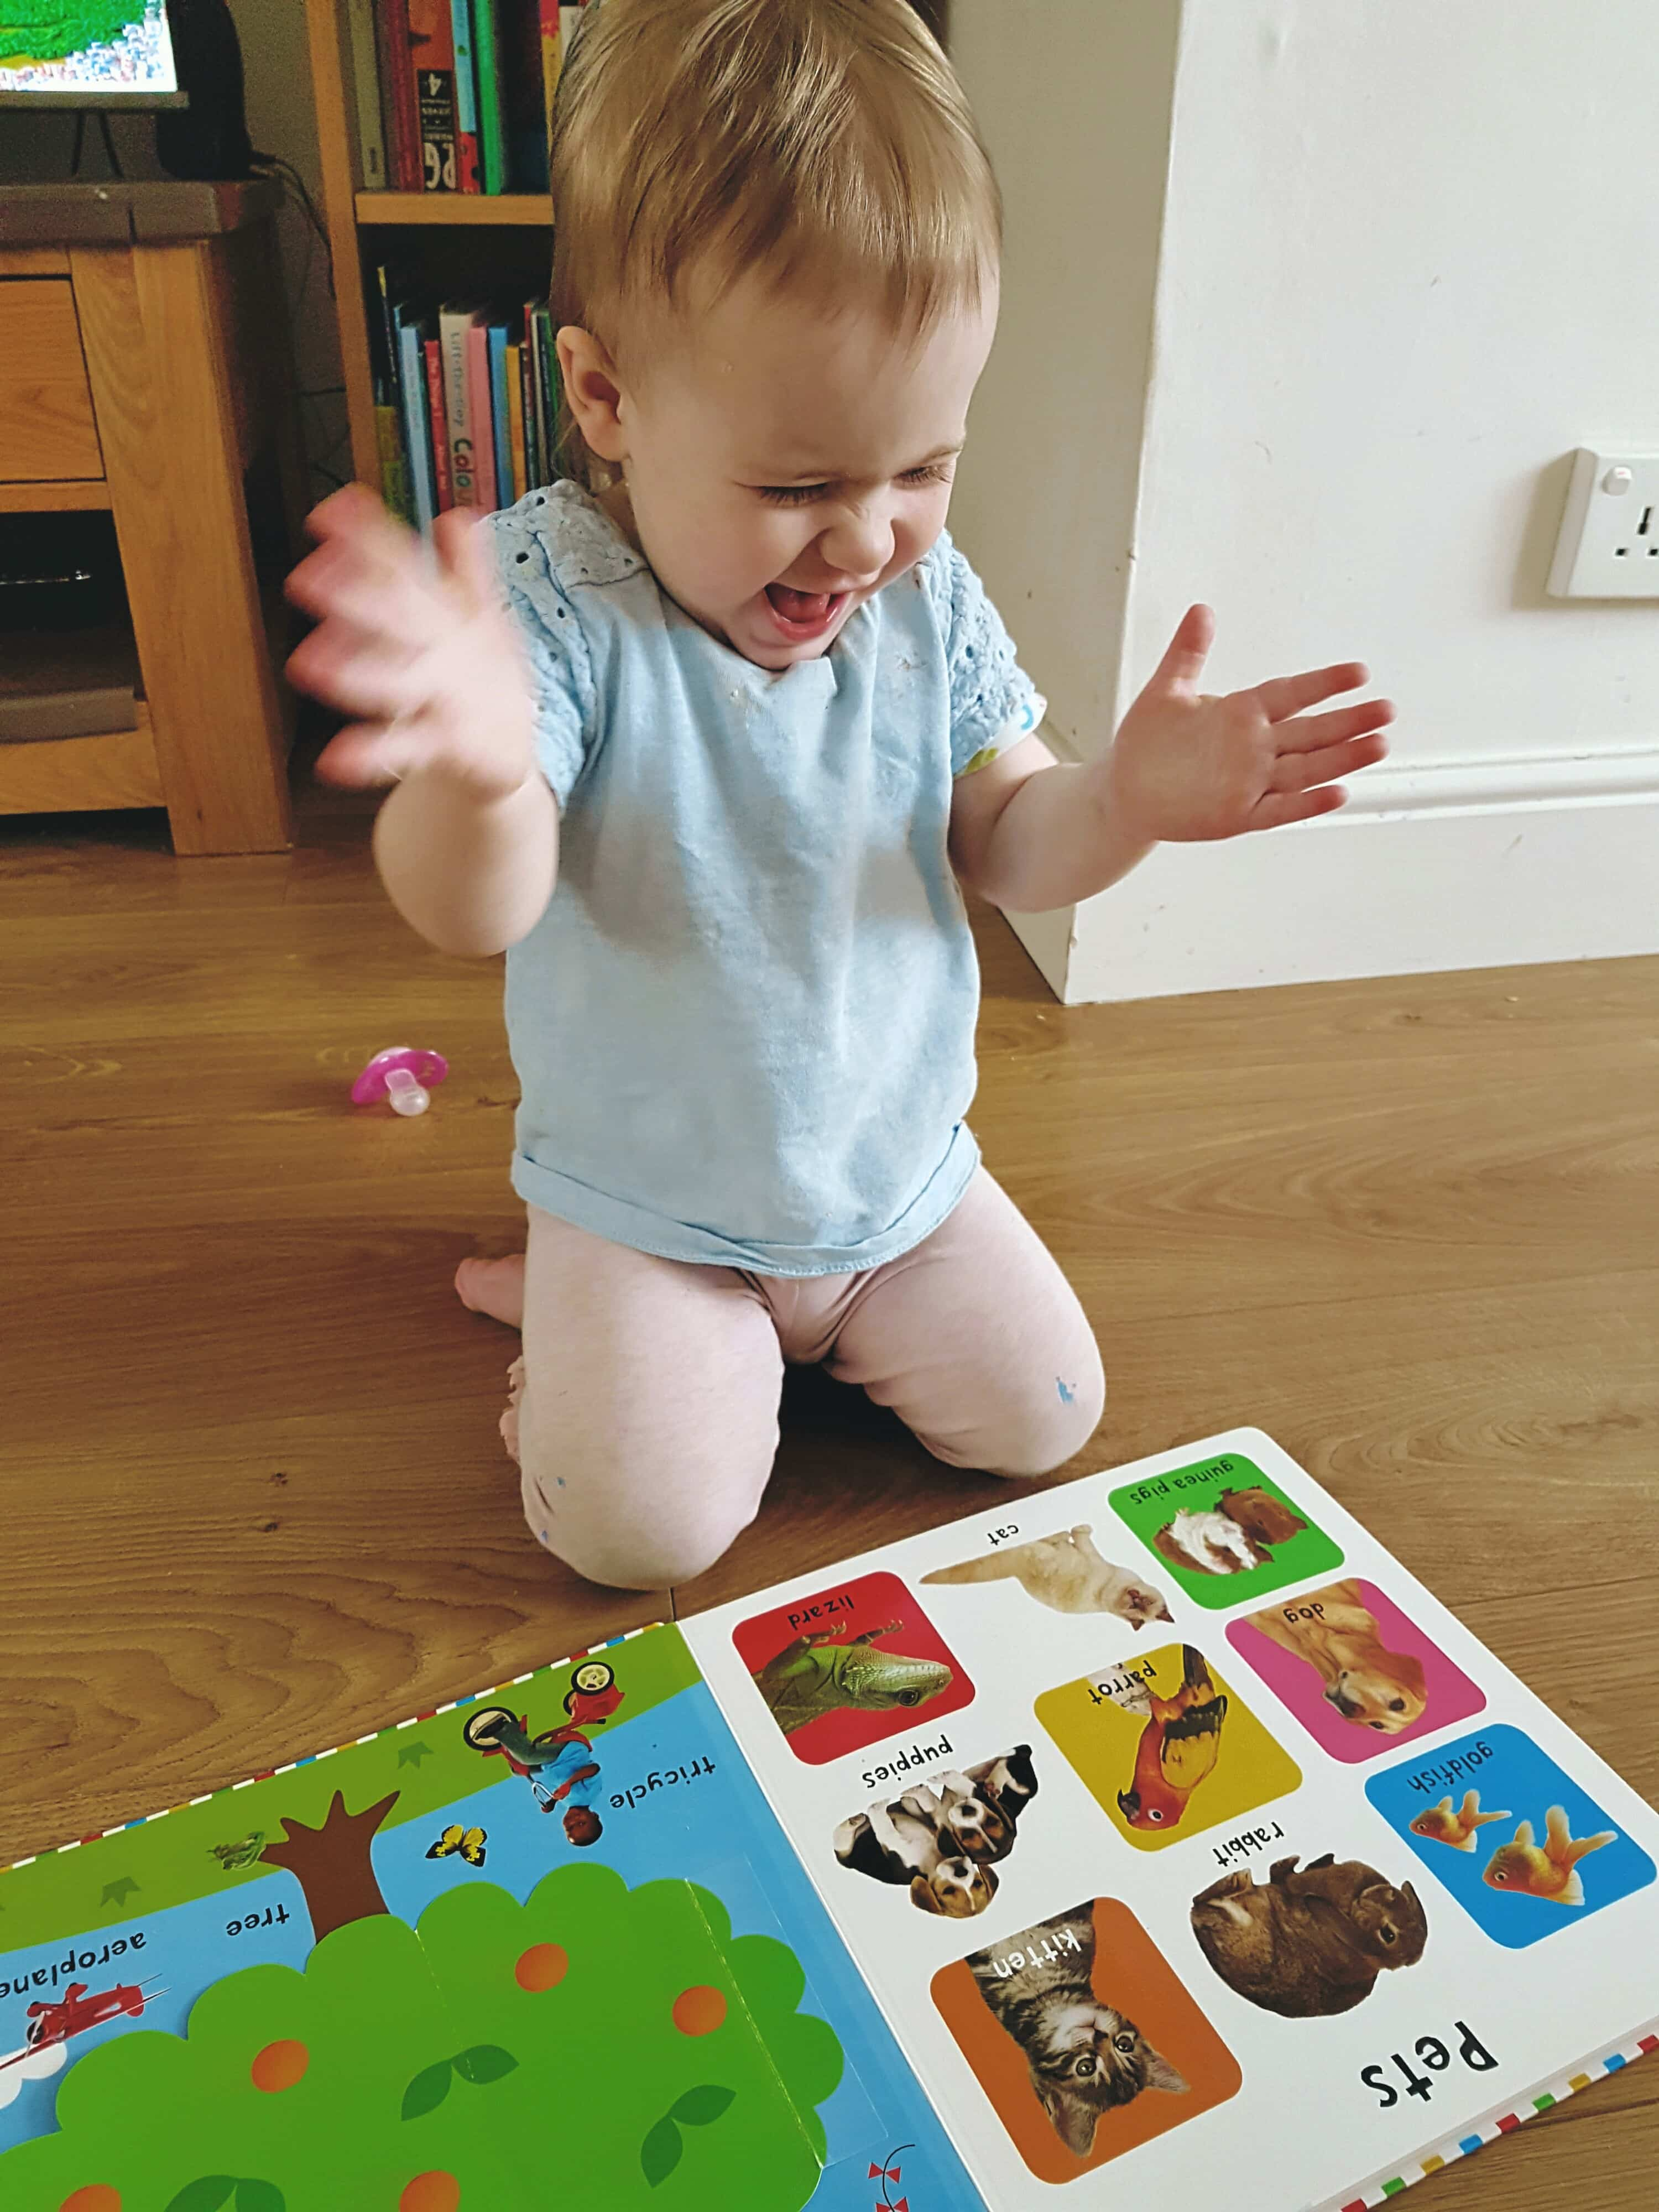 Little girl clapping while reading a lift-the-flap book